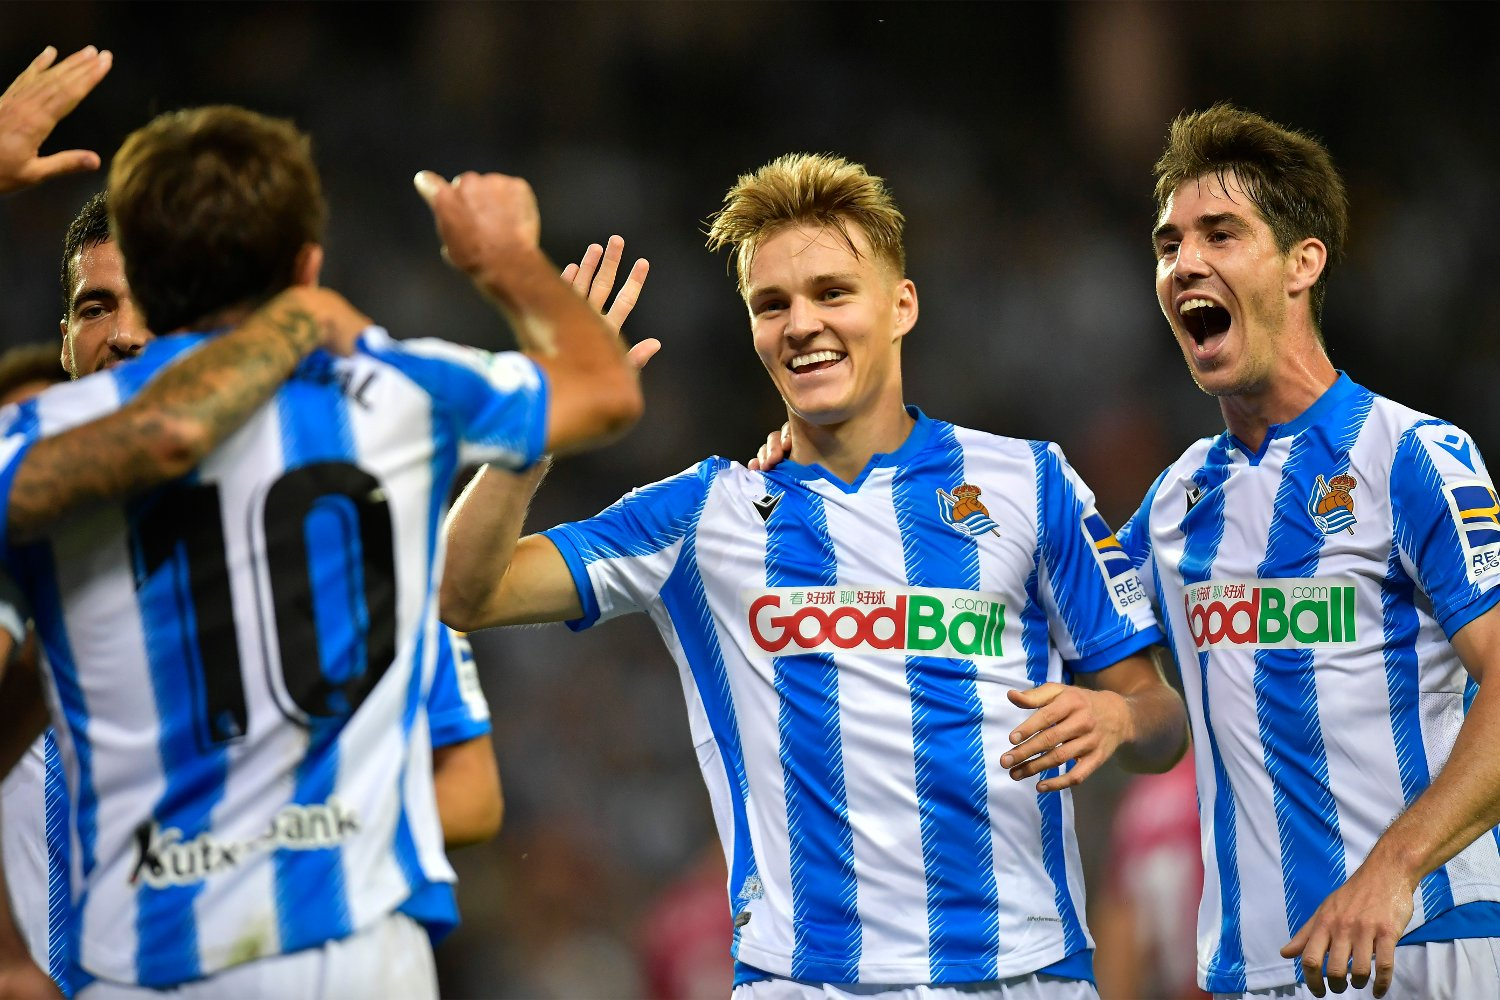 Real Sociedad's Martin Odegaard, center, celebrates after a goal of his team during the Spanish La Liga soccer match between Real Sociedad and Alaves at Reale Arena stadium, in San Sebastian, northern Spain, Thursday, Sept. 26, 2019.